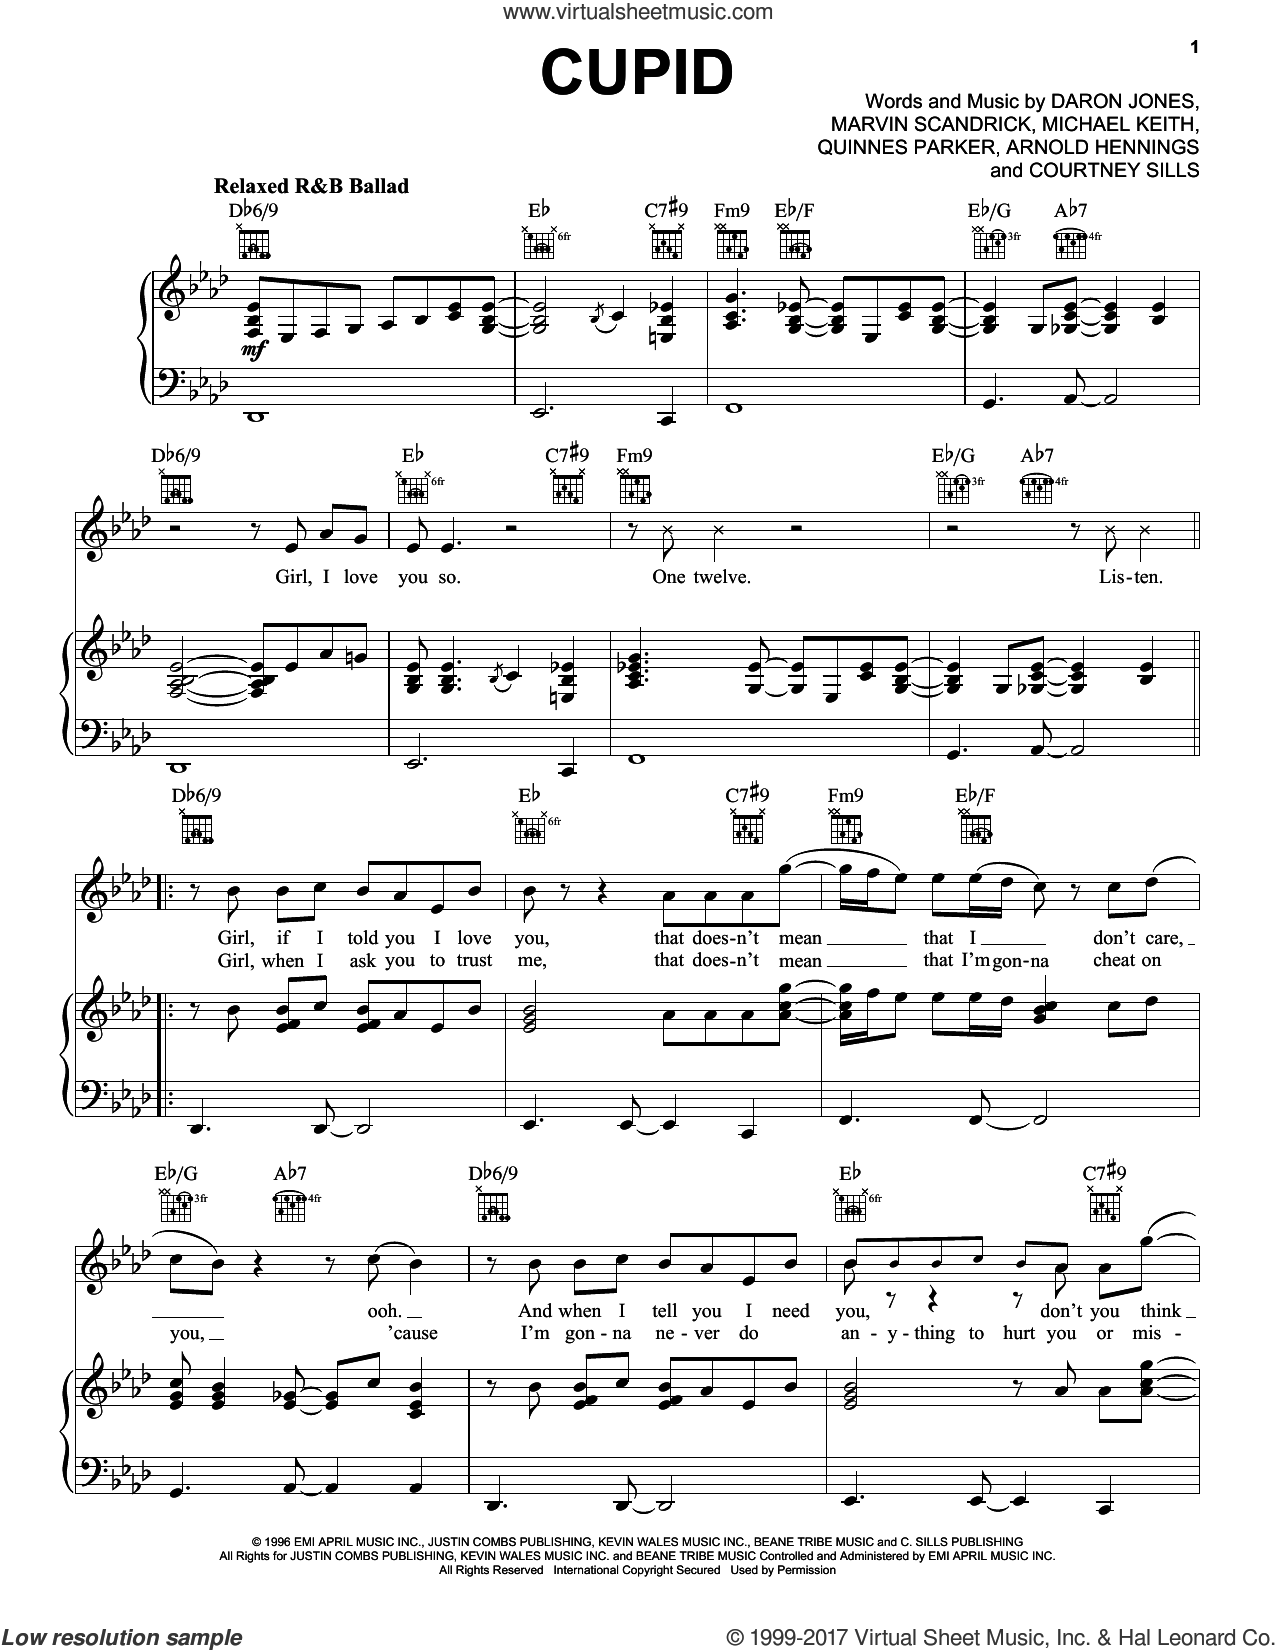 Cupid sheet music for voice, piano or guitar by 112, Arnold Hennings, Courtney Sills, Daron Jones, Marvin Scandrick, Michael Keith and Quinnes Parker, intermediate